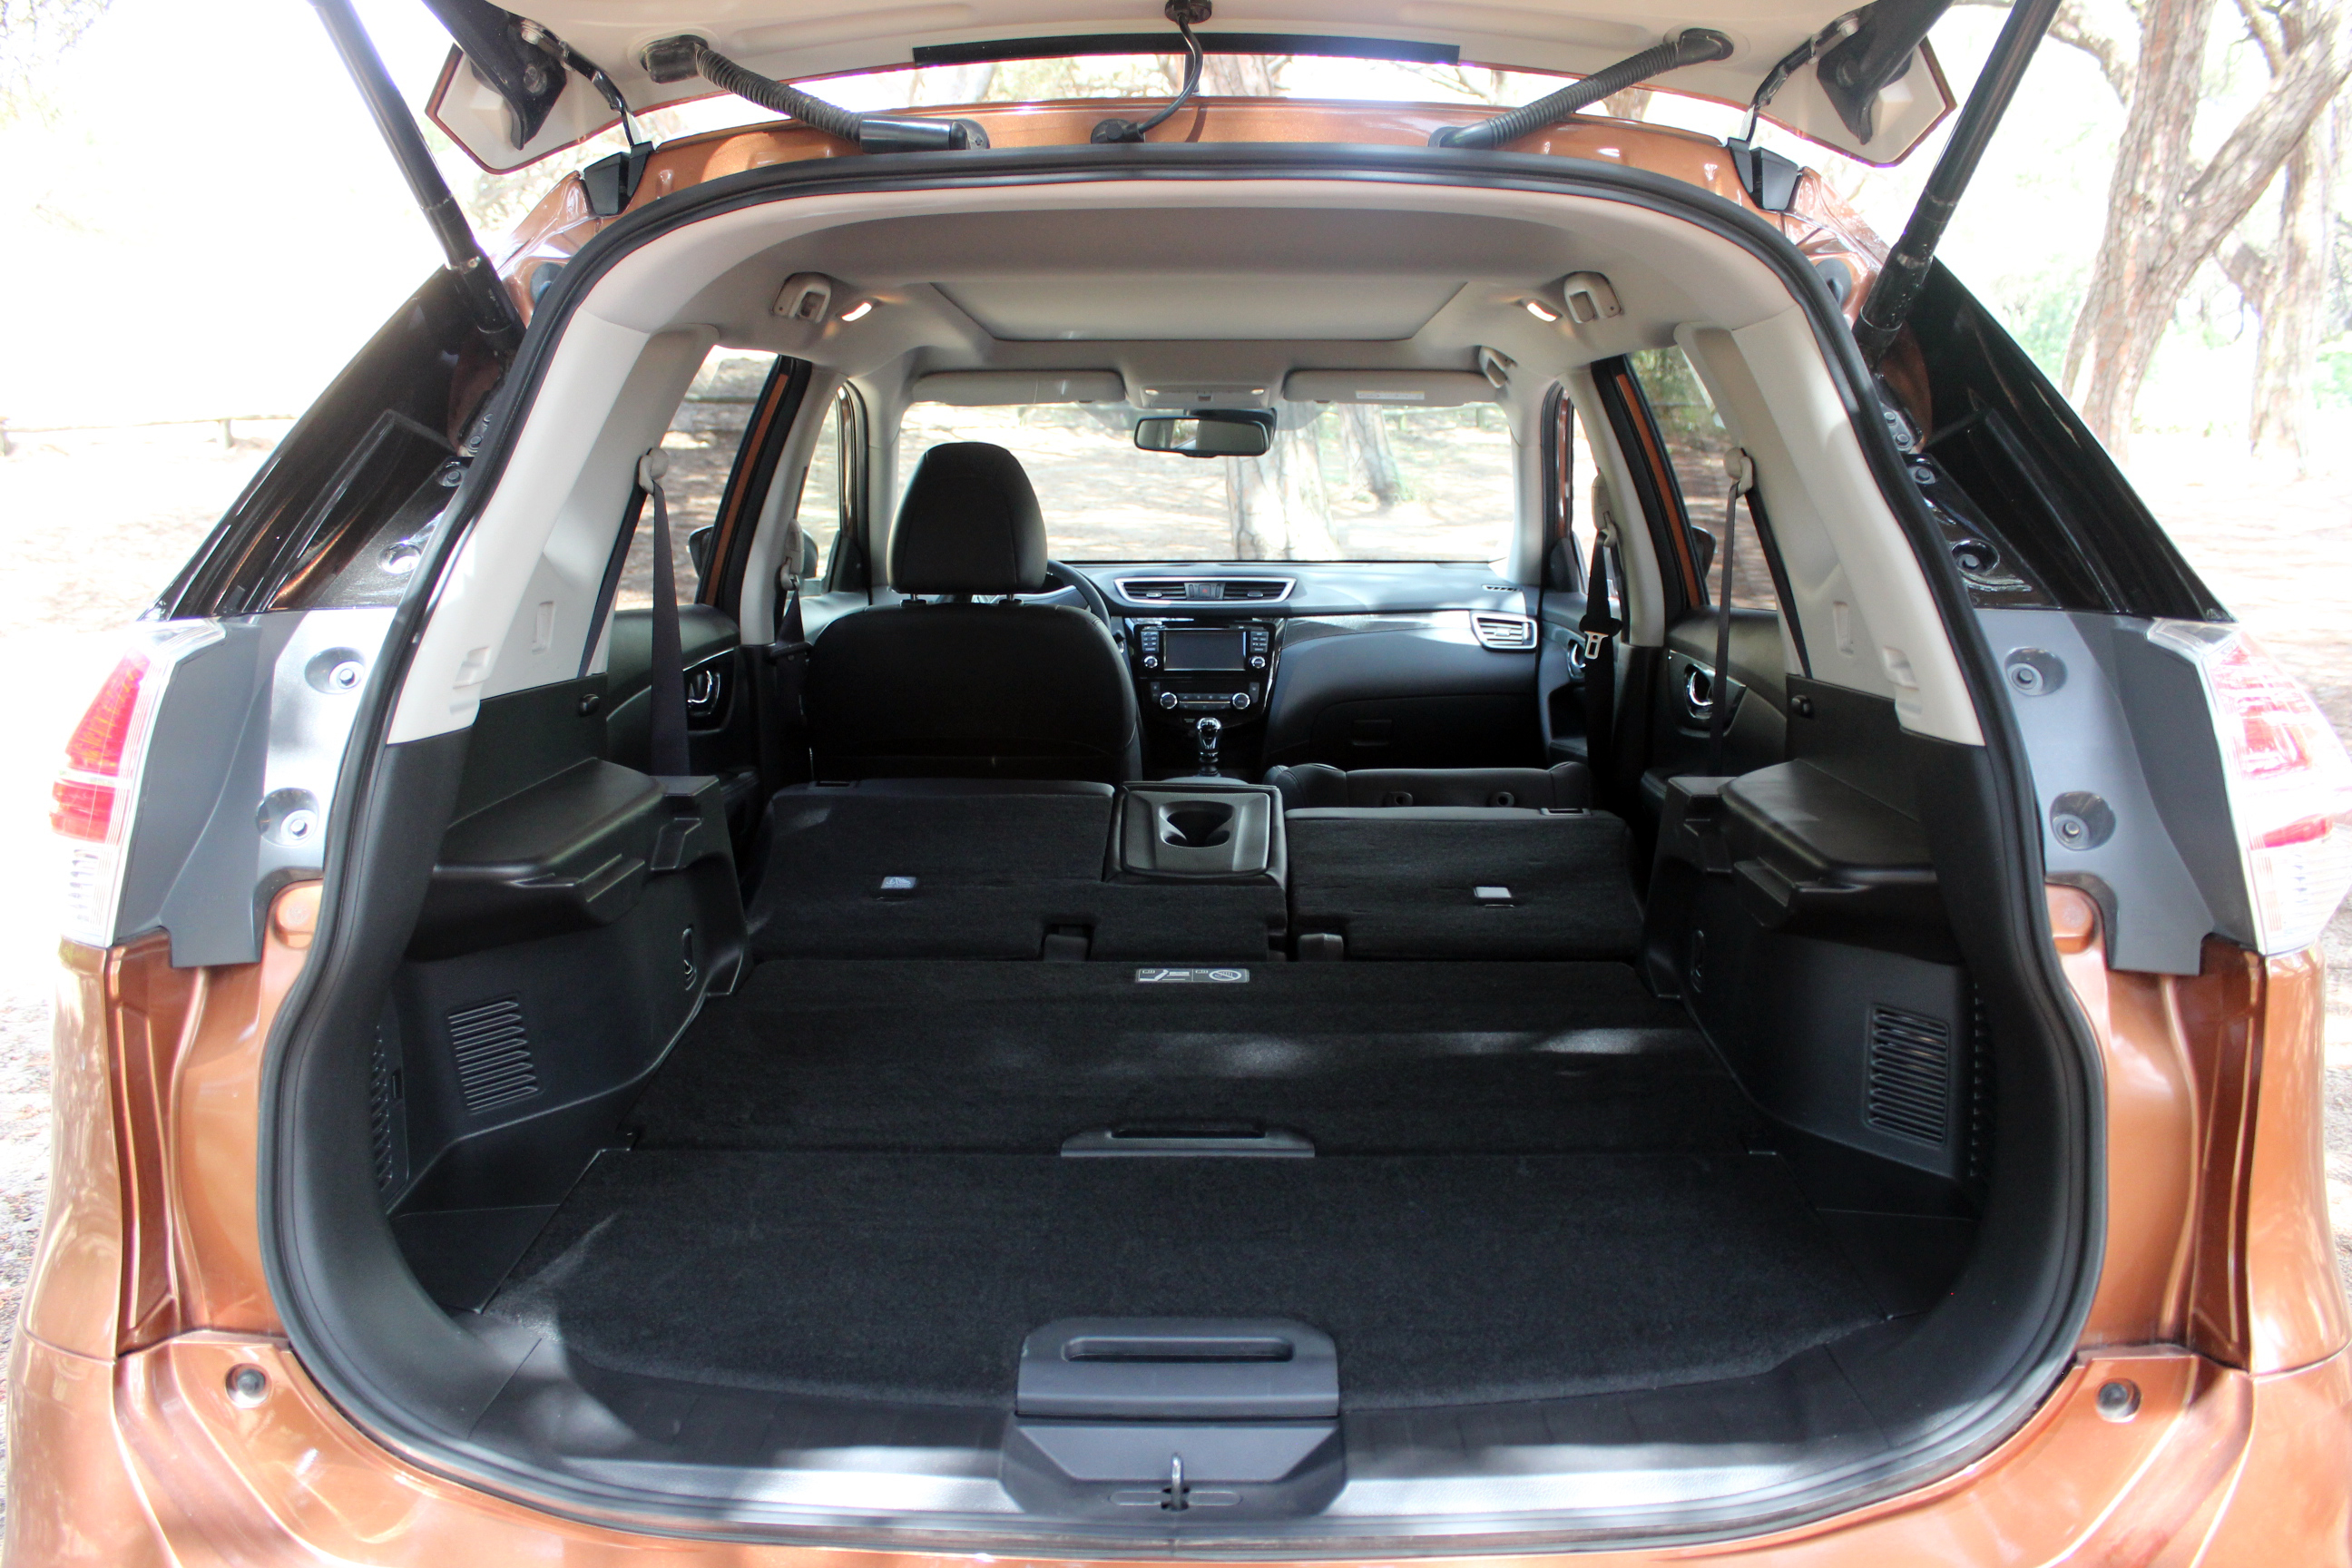 essai vid o nissan x trail quand le baroudeur devient suv. Black Bedroom Furniture Sets. Home Design Ideas